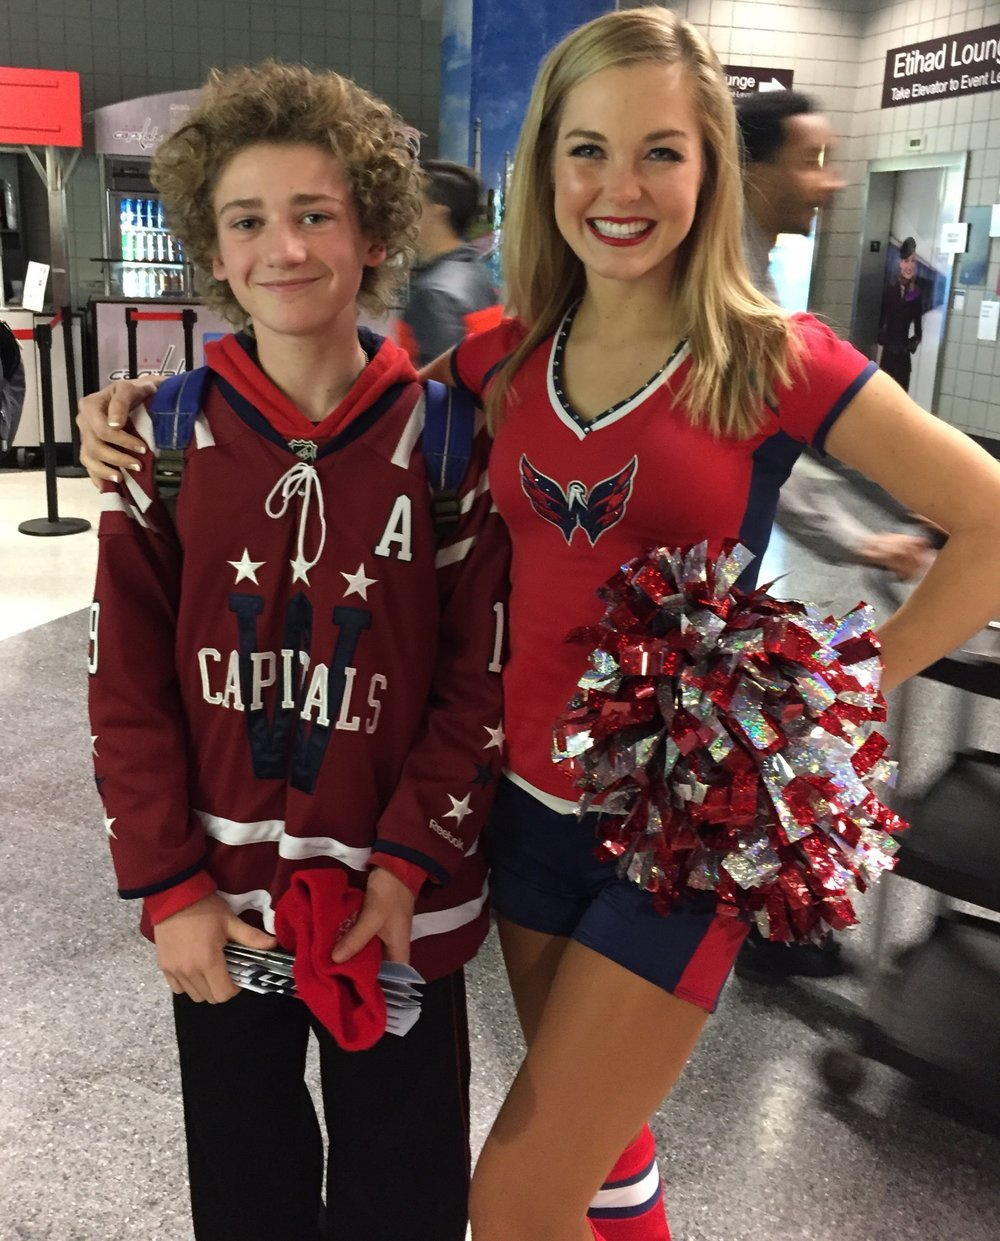 Ethan and I met at a Caps game (of course) in November 2016.